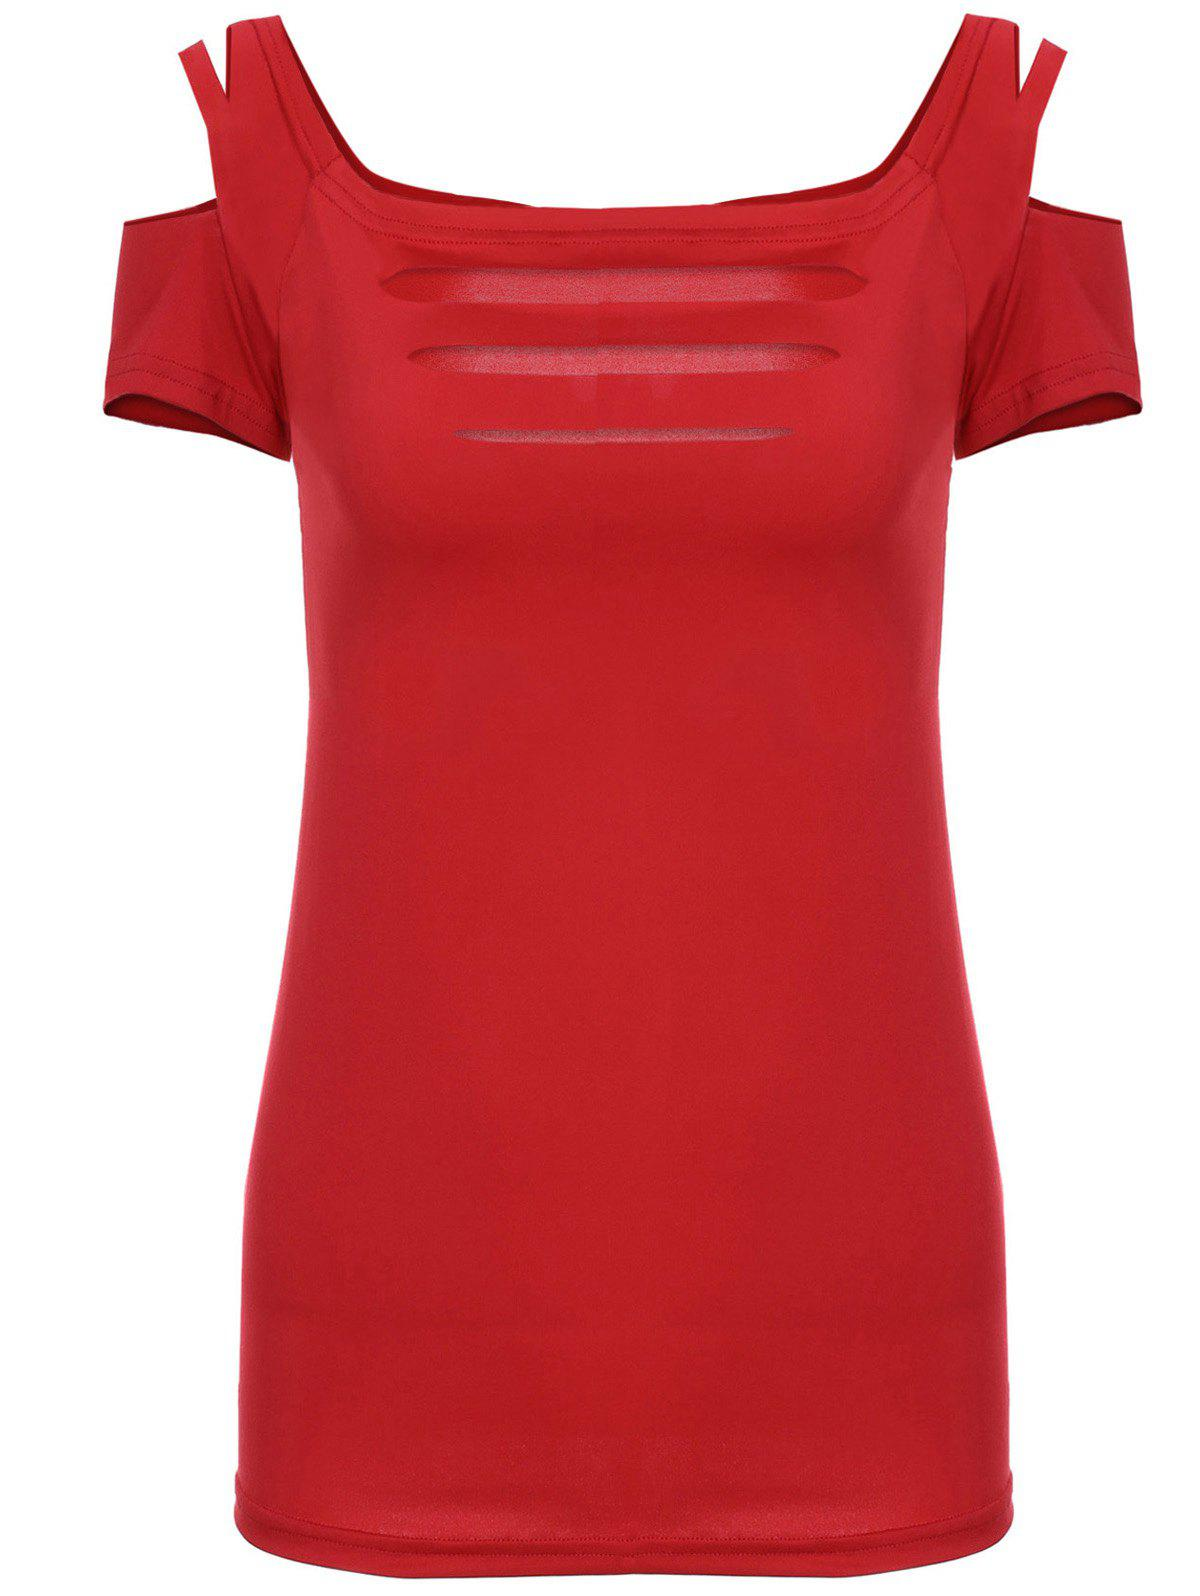 Alluring Solid Color Elastic Short Sleeve Scoop Neck Battered T-Shirt